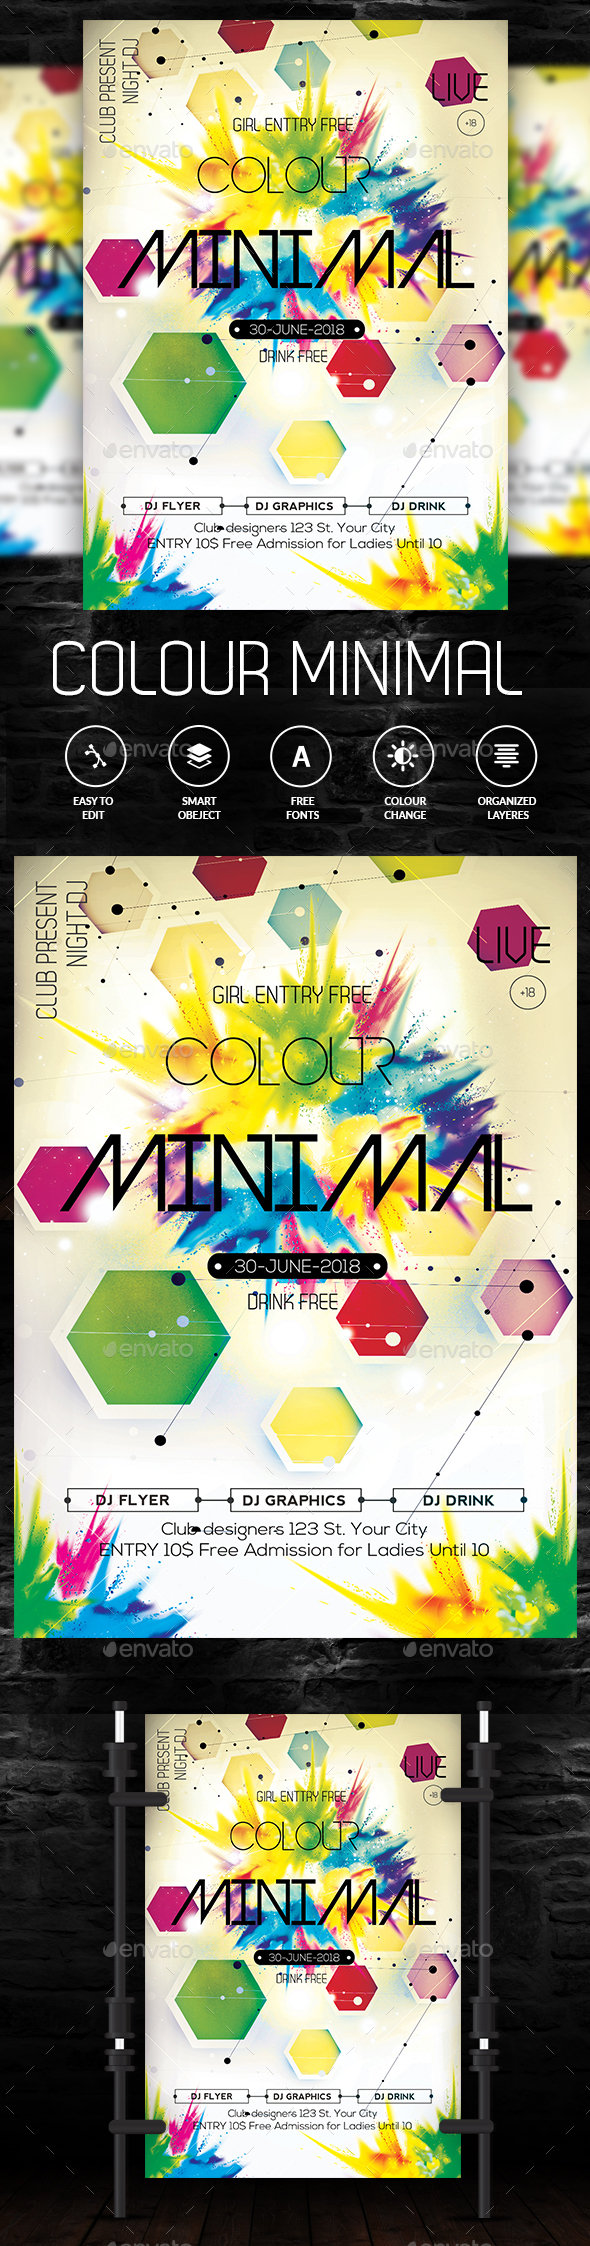 Minimal Color Flyer - Clubs & Parties Events